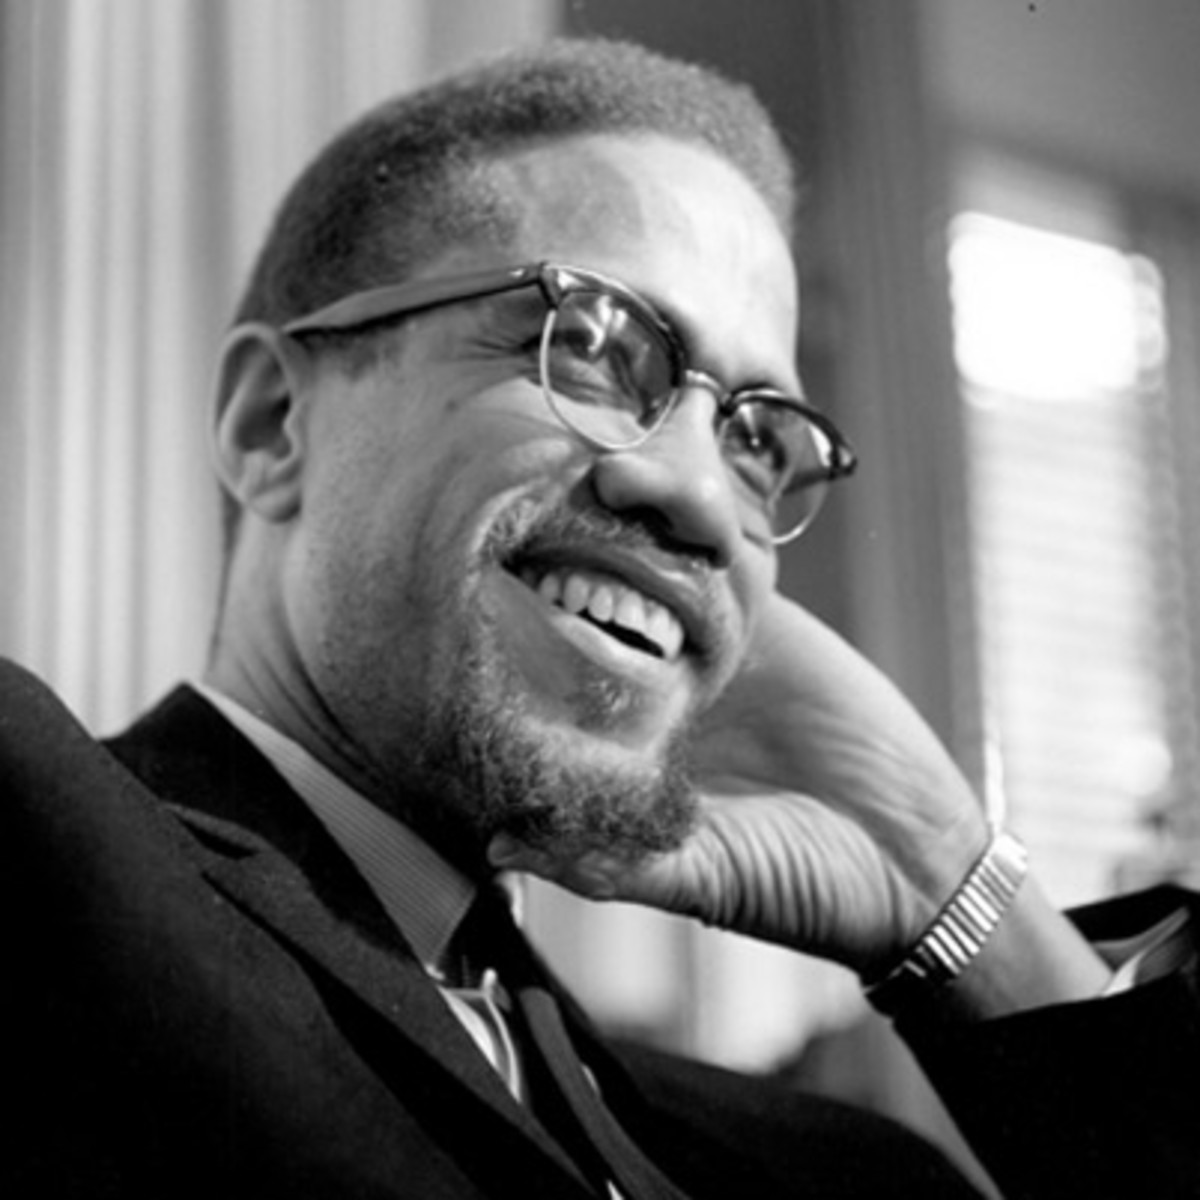 Today is the 55th anniversary of the day #MalcolmX was assassinated.